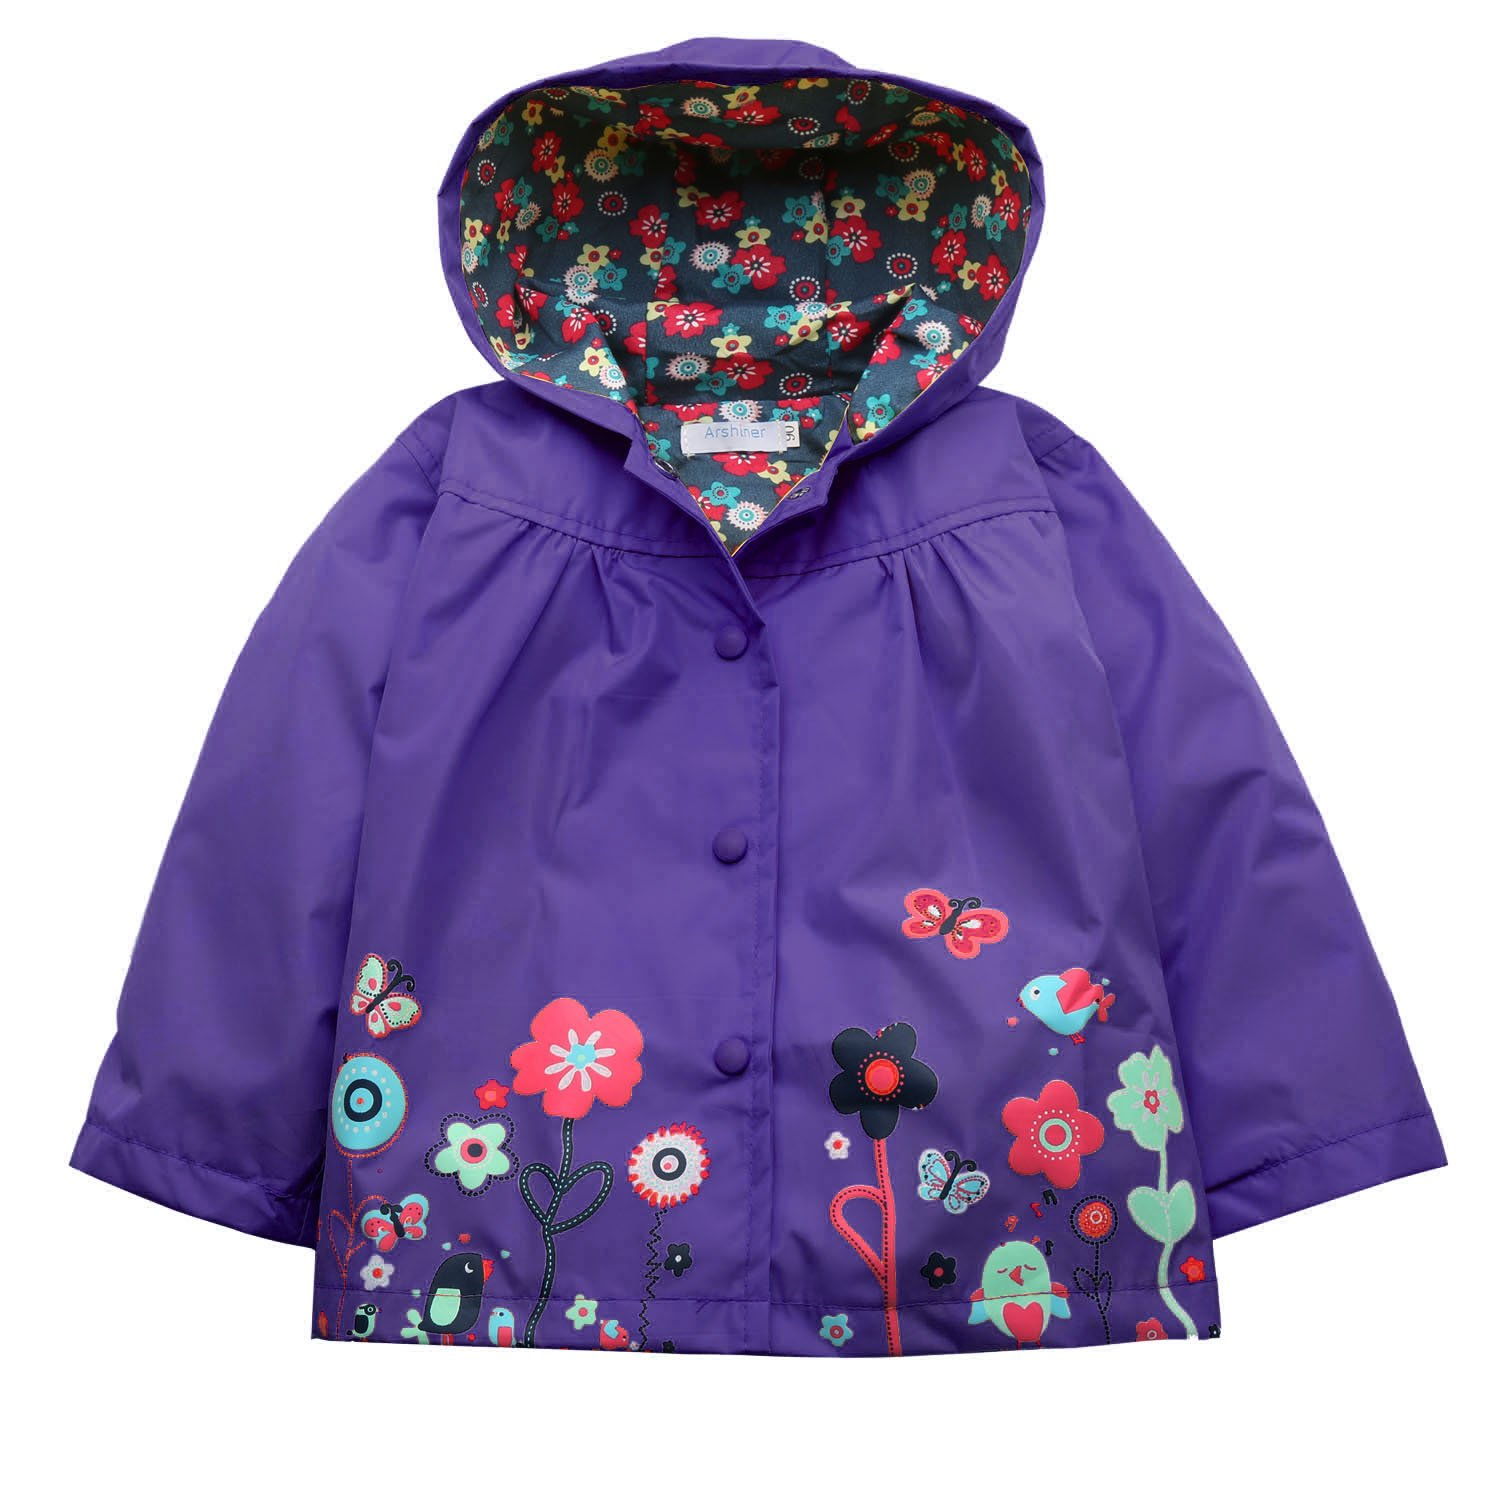 Arshiner Little Girls' Waterproof Hooded Coat Jacket Outwear Raincoat JE-506O-TG32